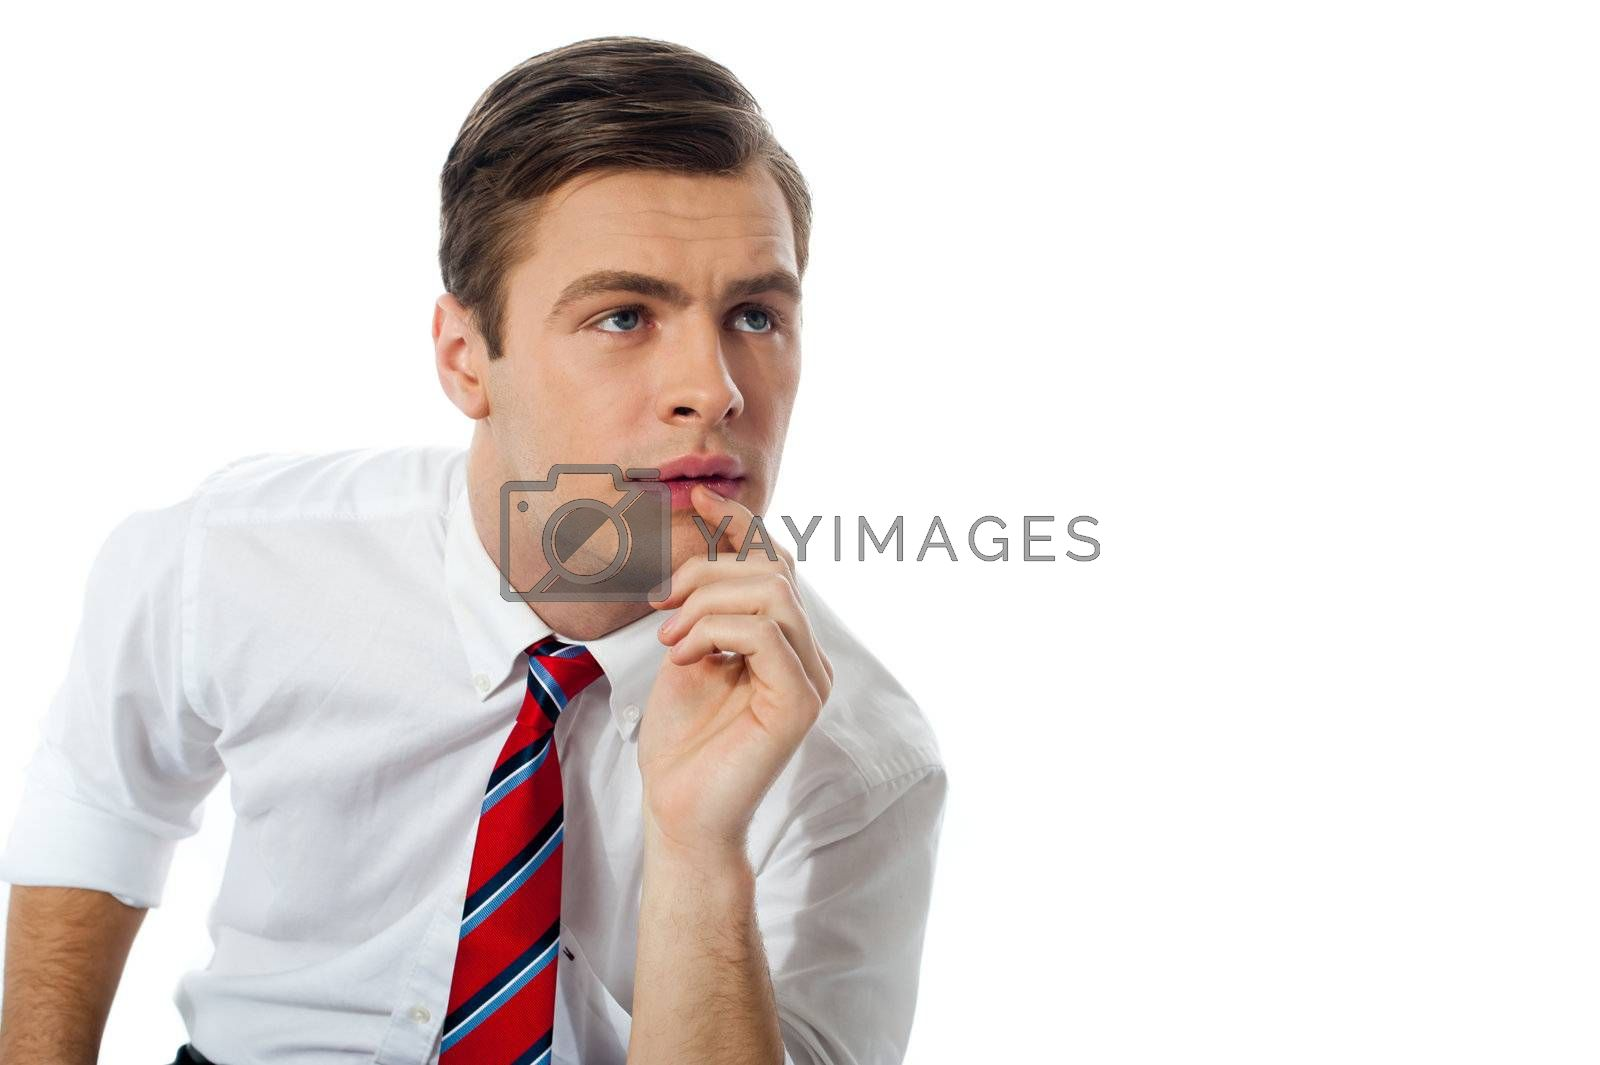 Thoughful business person looking up at something interesting